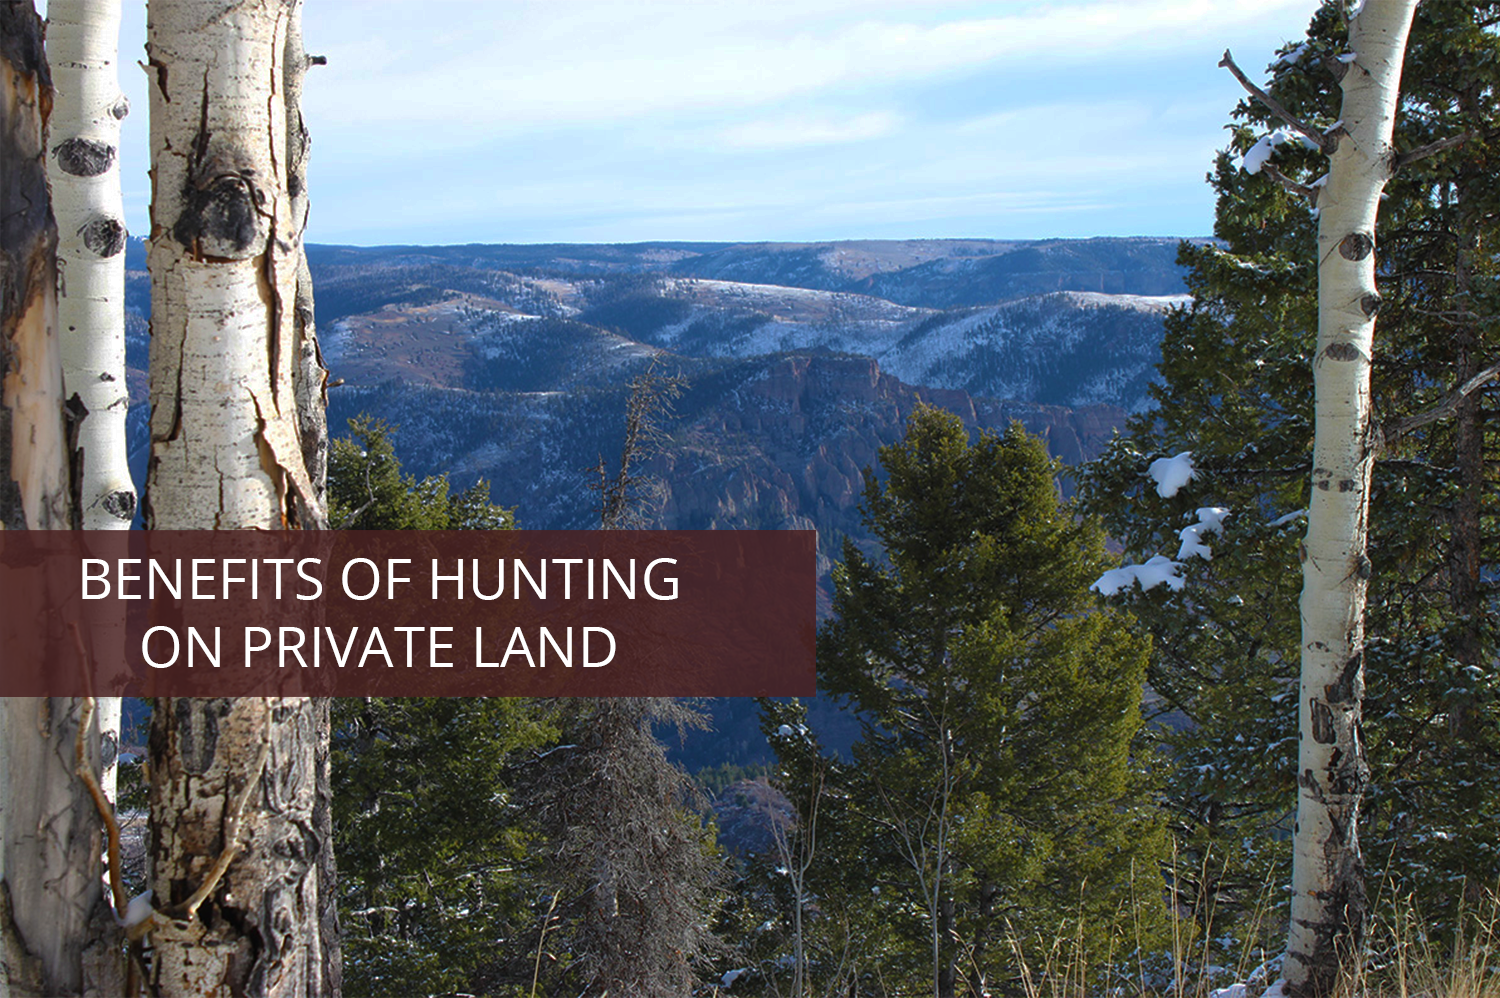 Soap Mesa Outfitters hunting on private land; view of the Rockies.